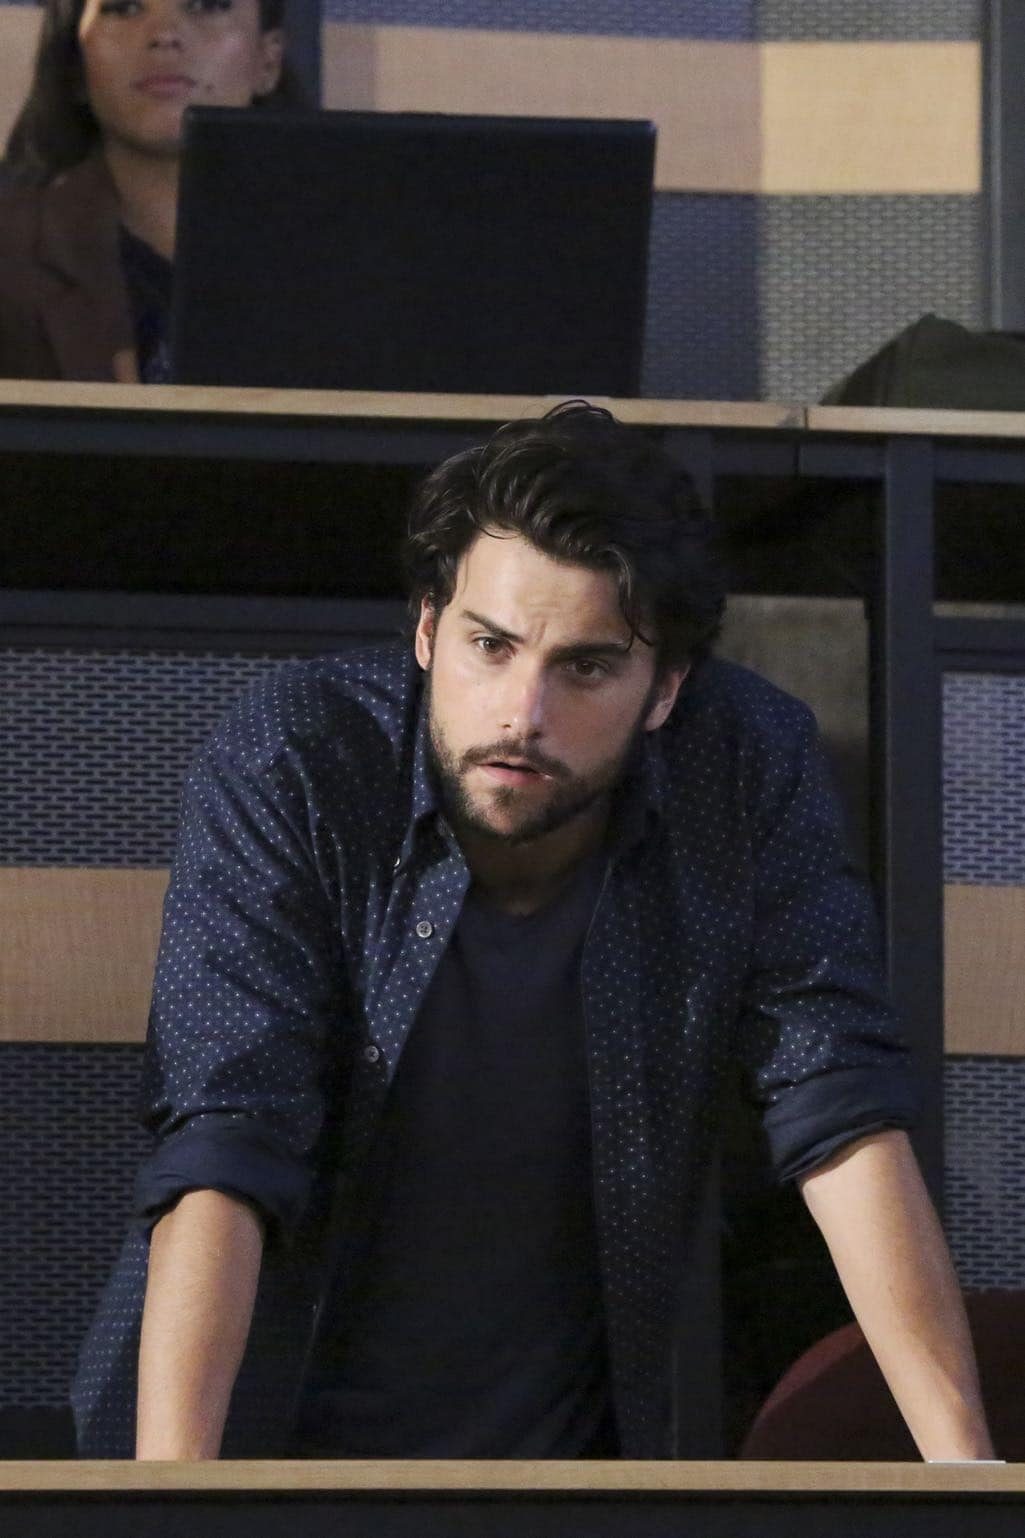 """HOW TO GET AWAY WITH MURDER - """"Is Someone Really Dead?"""" - A revelation in the Wallace Mahoney murder rattles Annalise and the Keating 5, as the team takes on the case of a veteran facing assault charges, on """"How to Get Away with Murder,"""" THURSDAY, OCTOBER 27 (10:00-11:00 p.m. EDT), on the ABC Television Network. (ABC/Mitch Haaseth) JACK FALAHEE"""